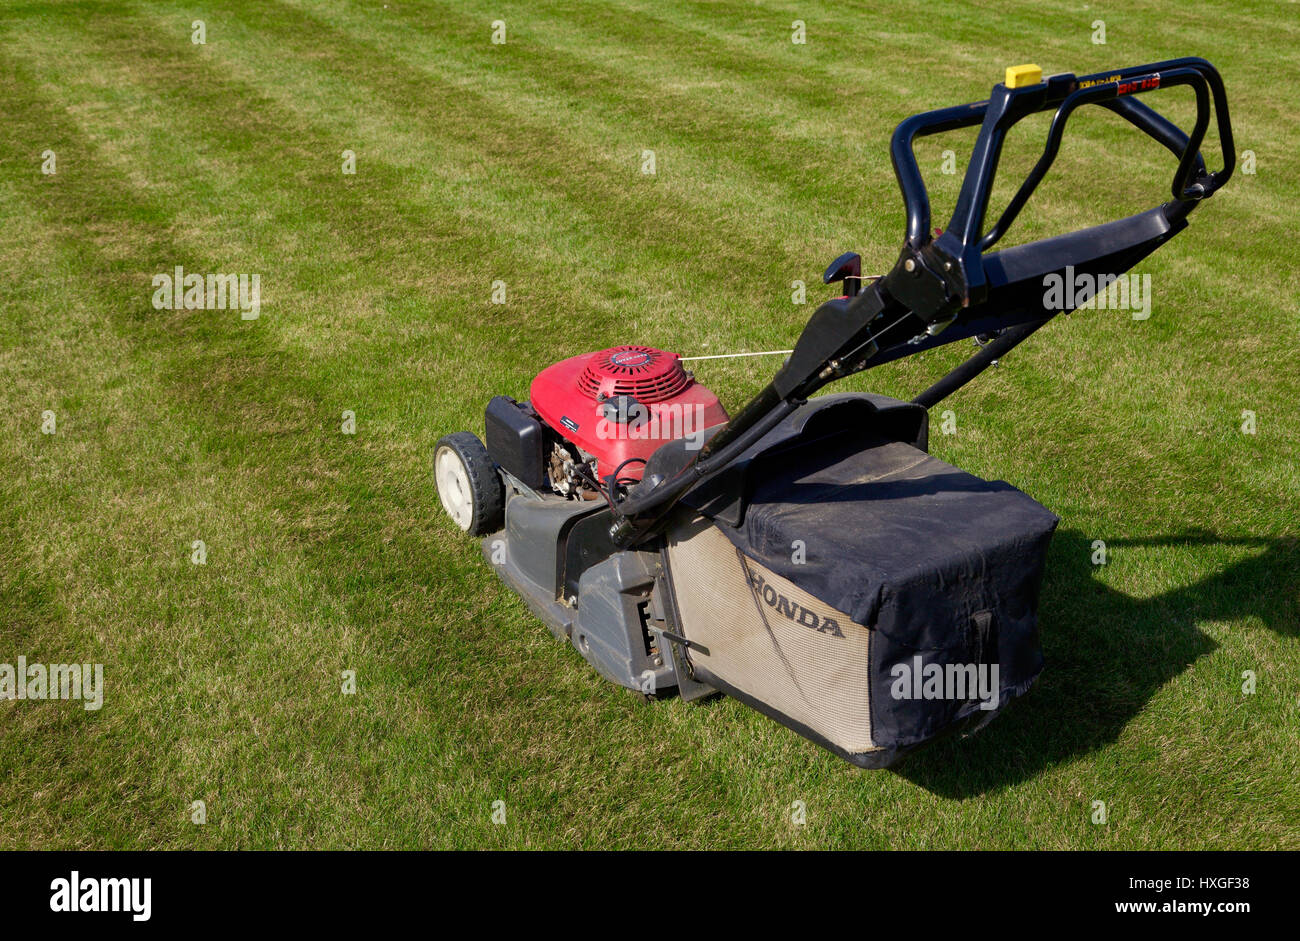 Honda lawnmower on newly mowed striped lawn - Stock Image